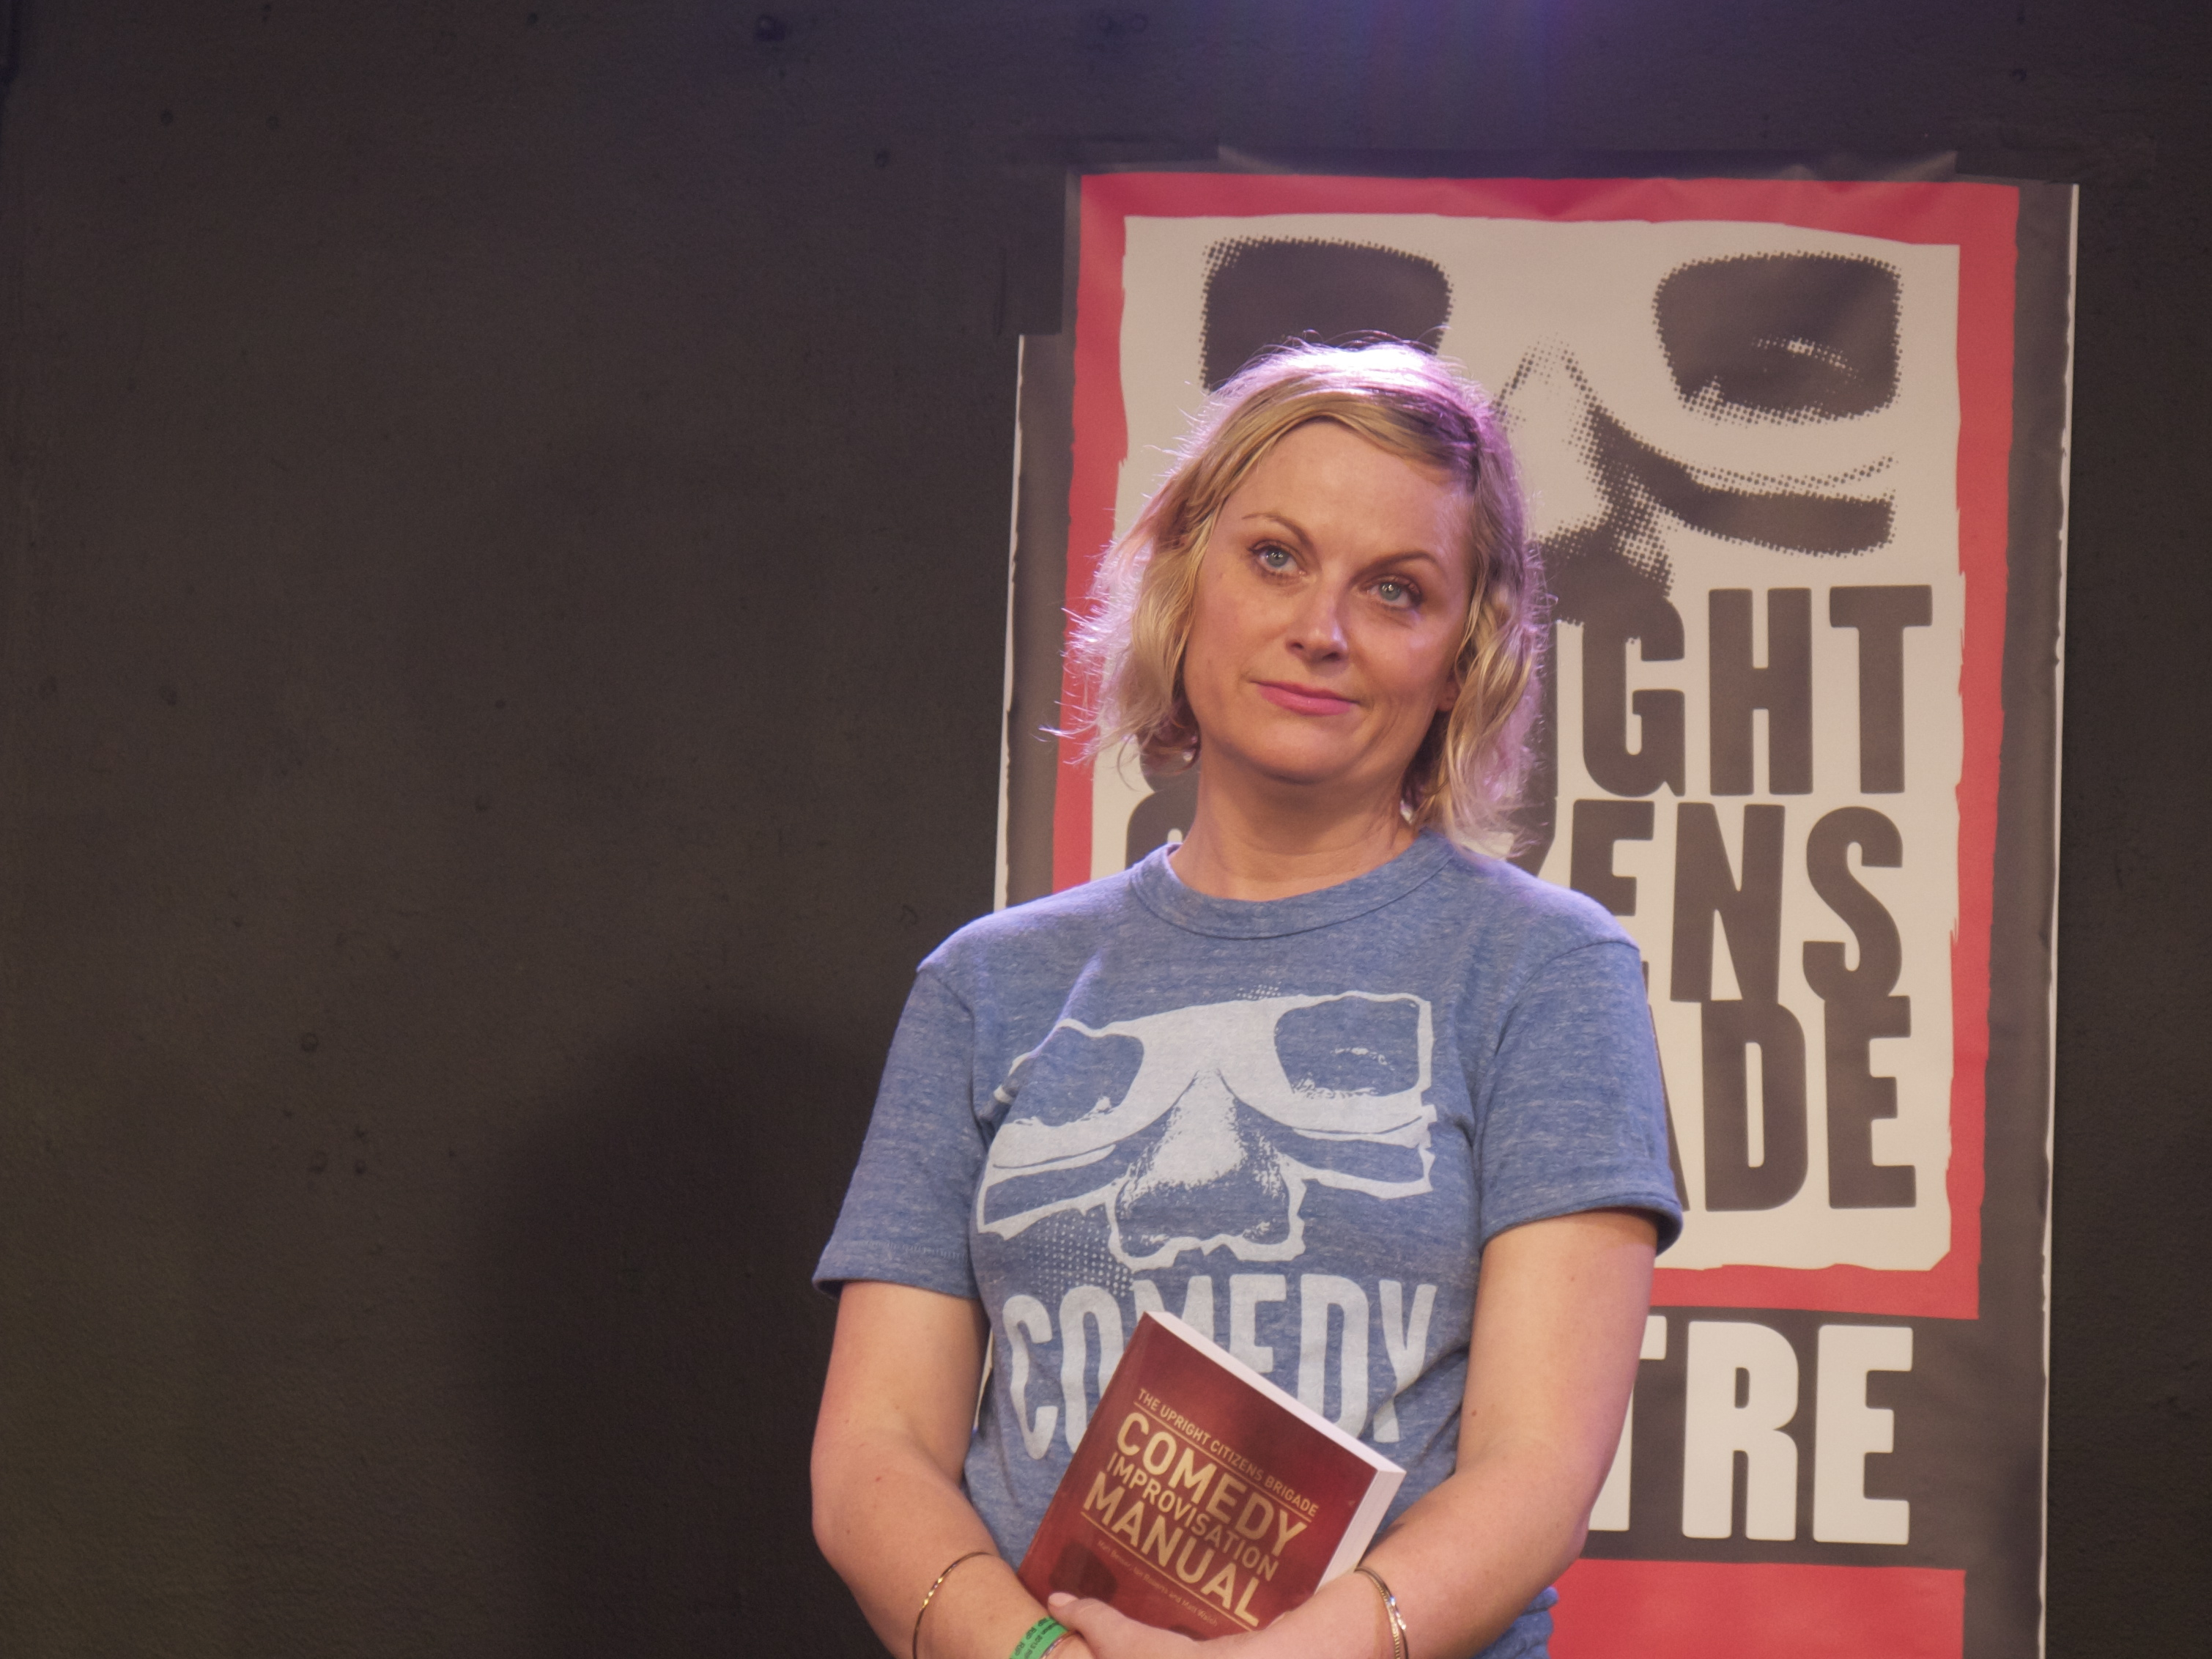 Amy Poehler at the DCM presser. (Photo: Anna Silman)